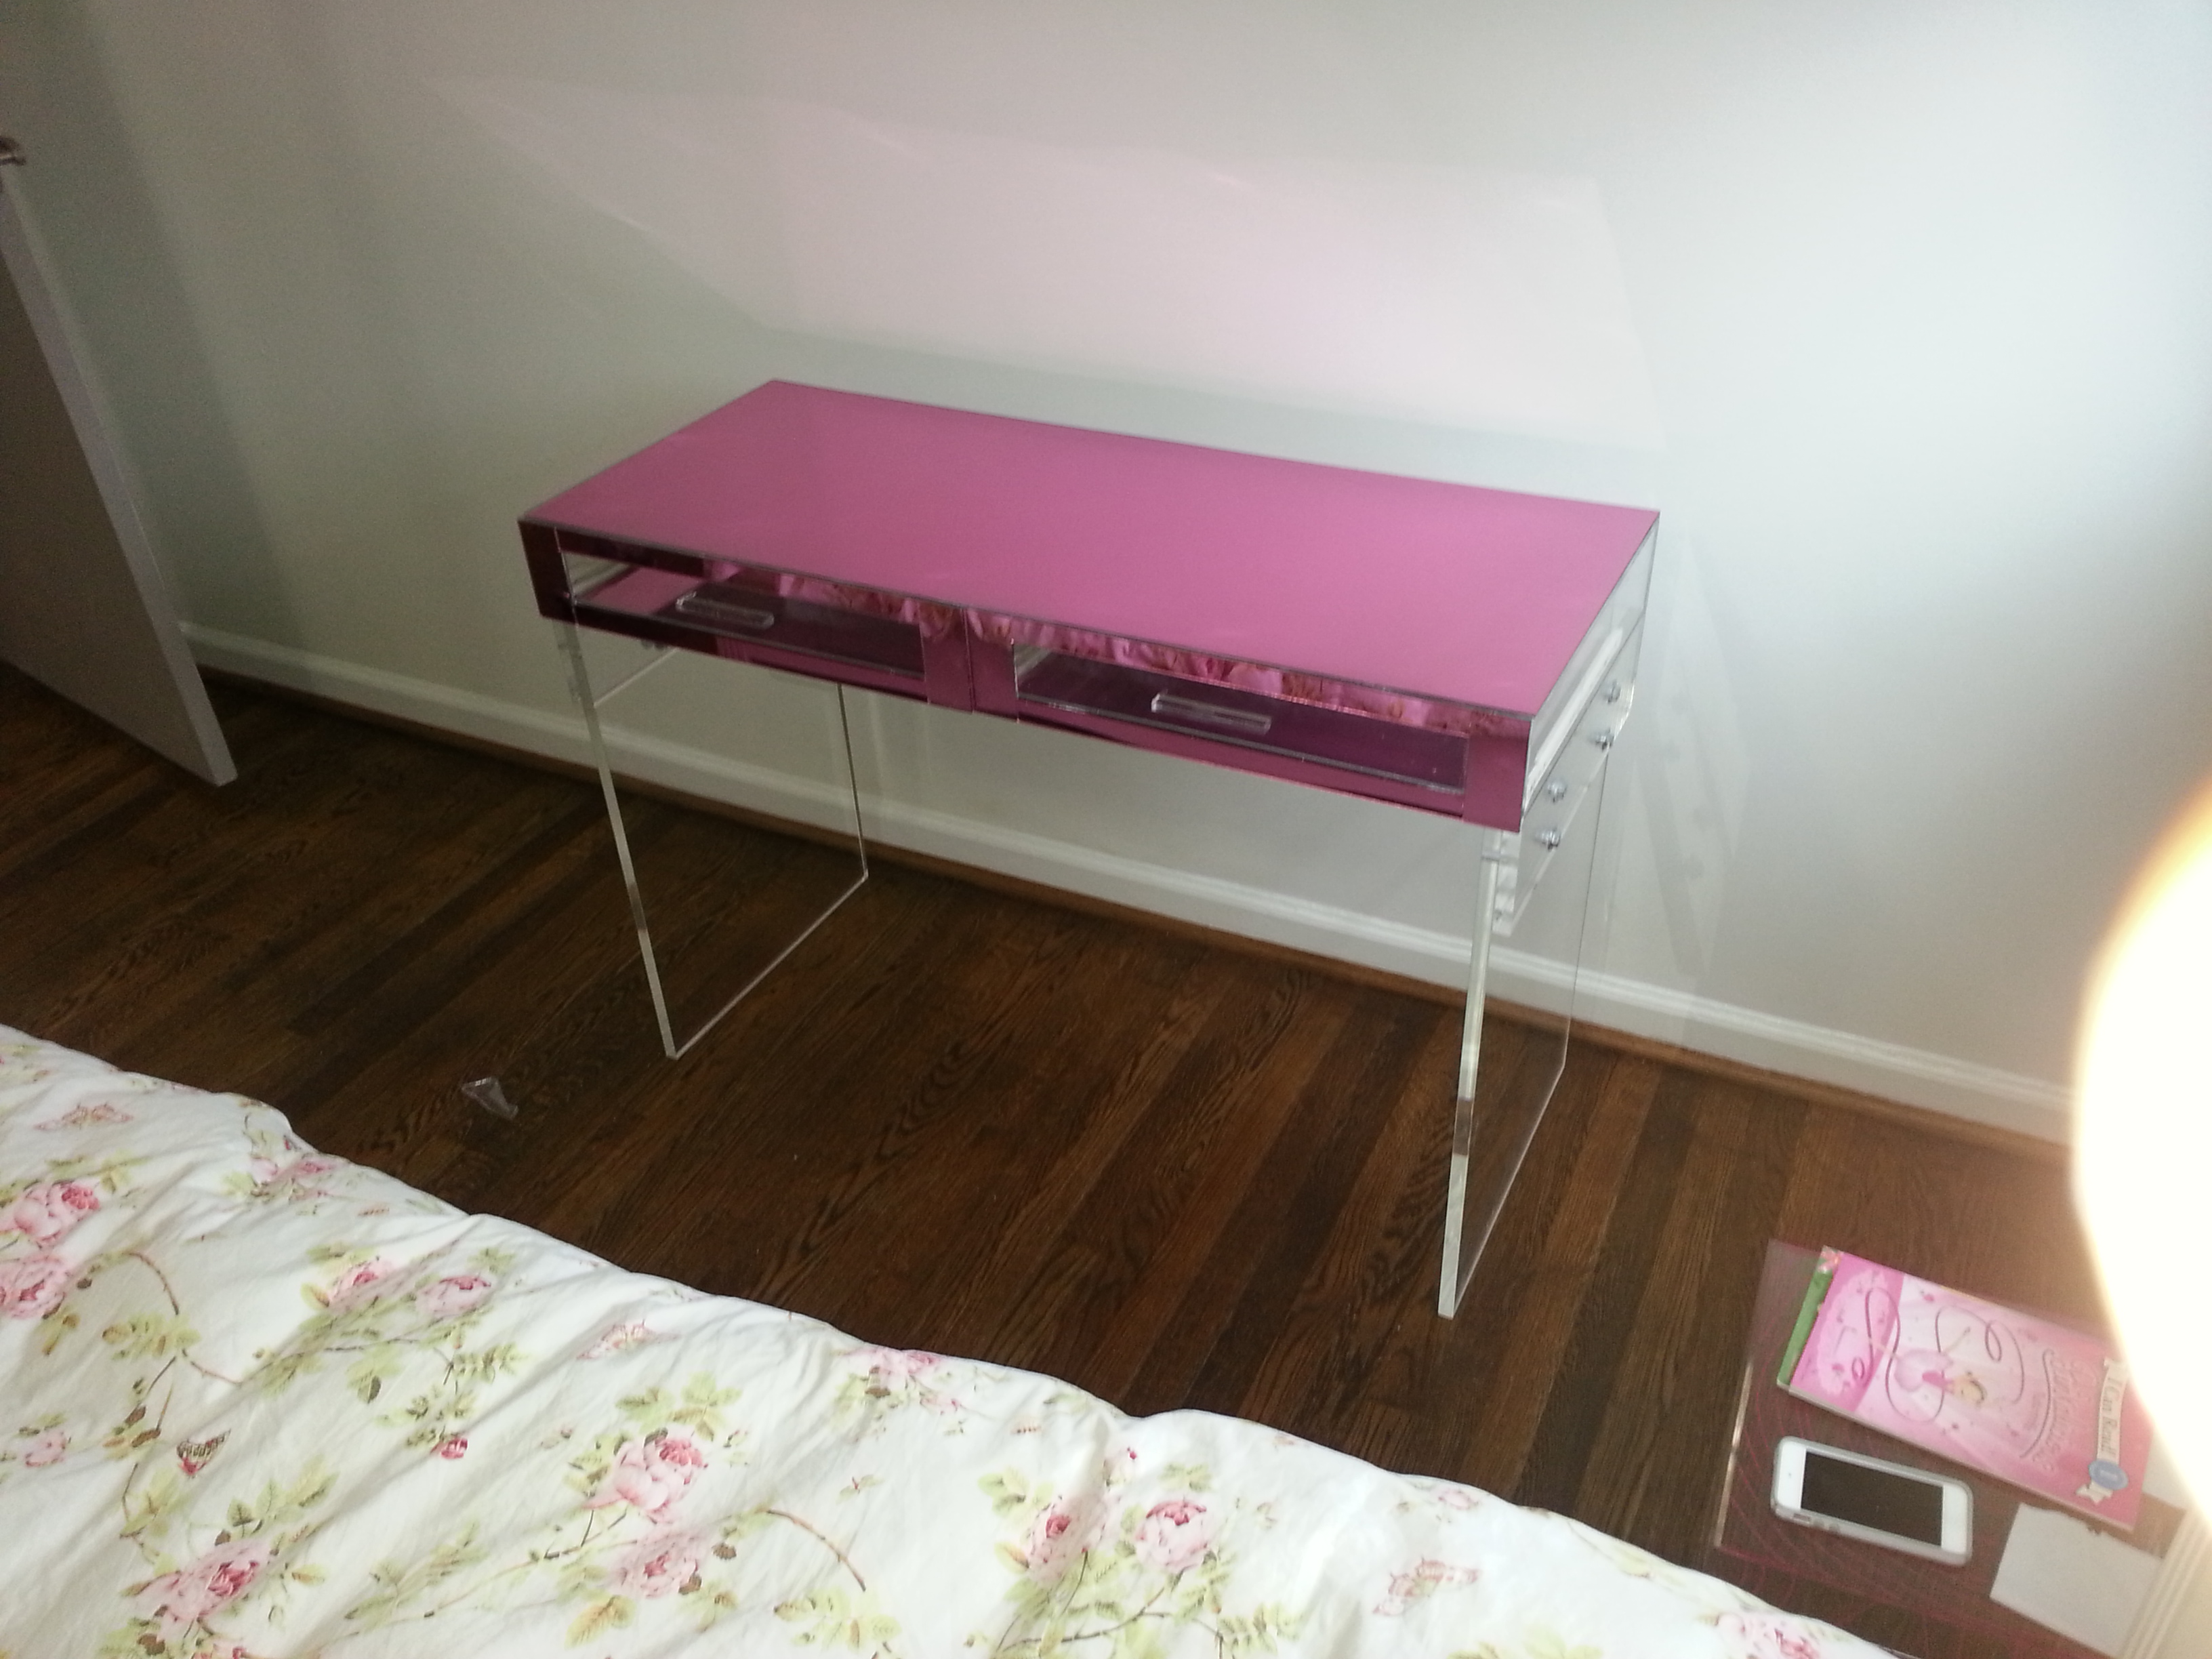 Pink Mirrored Acrylic Vanity/Desk